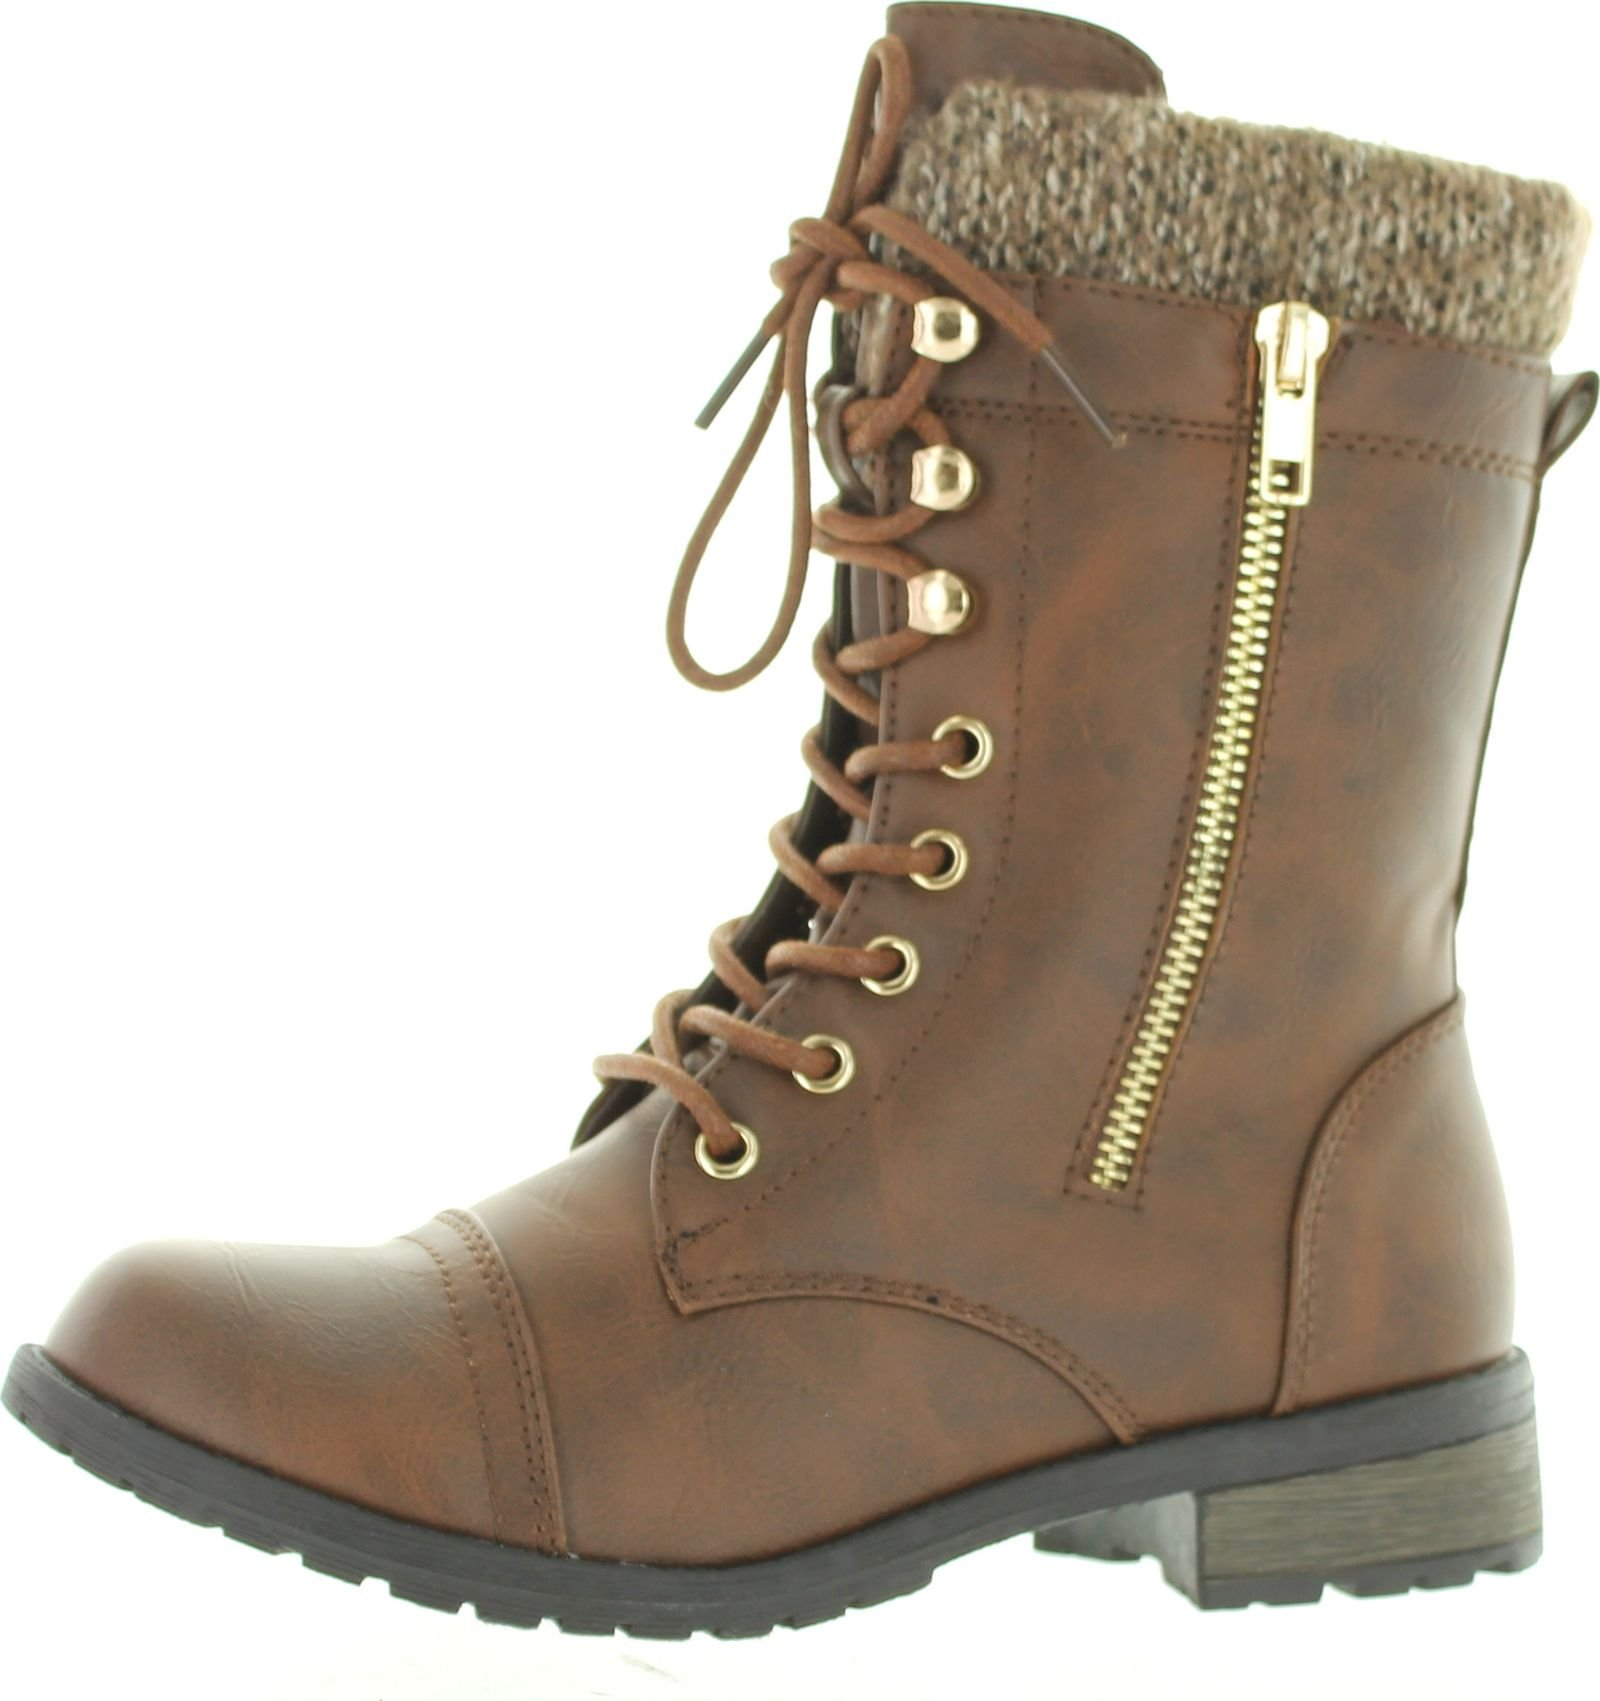 Forever Link Womens Mango-31 Round Toe Military Lace up Knit Ankle Cuff Low Heel Combat Boots Brown PU 8